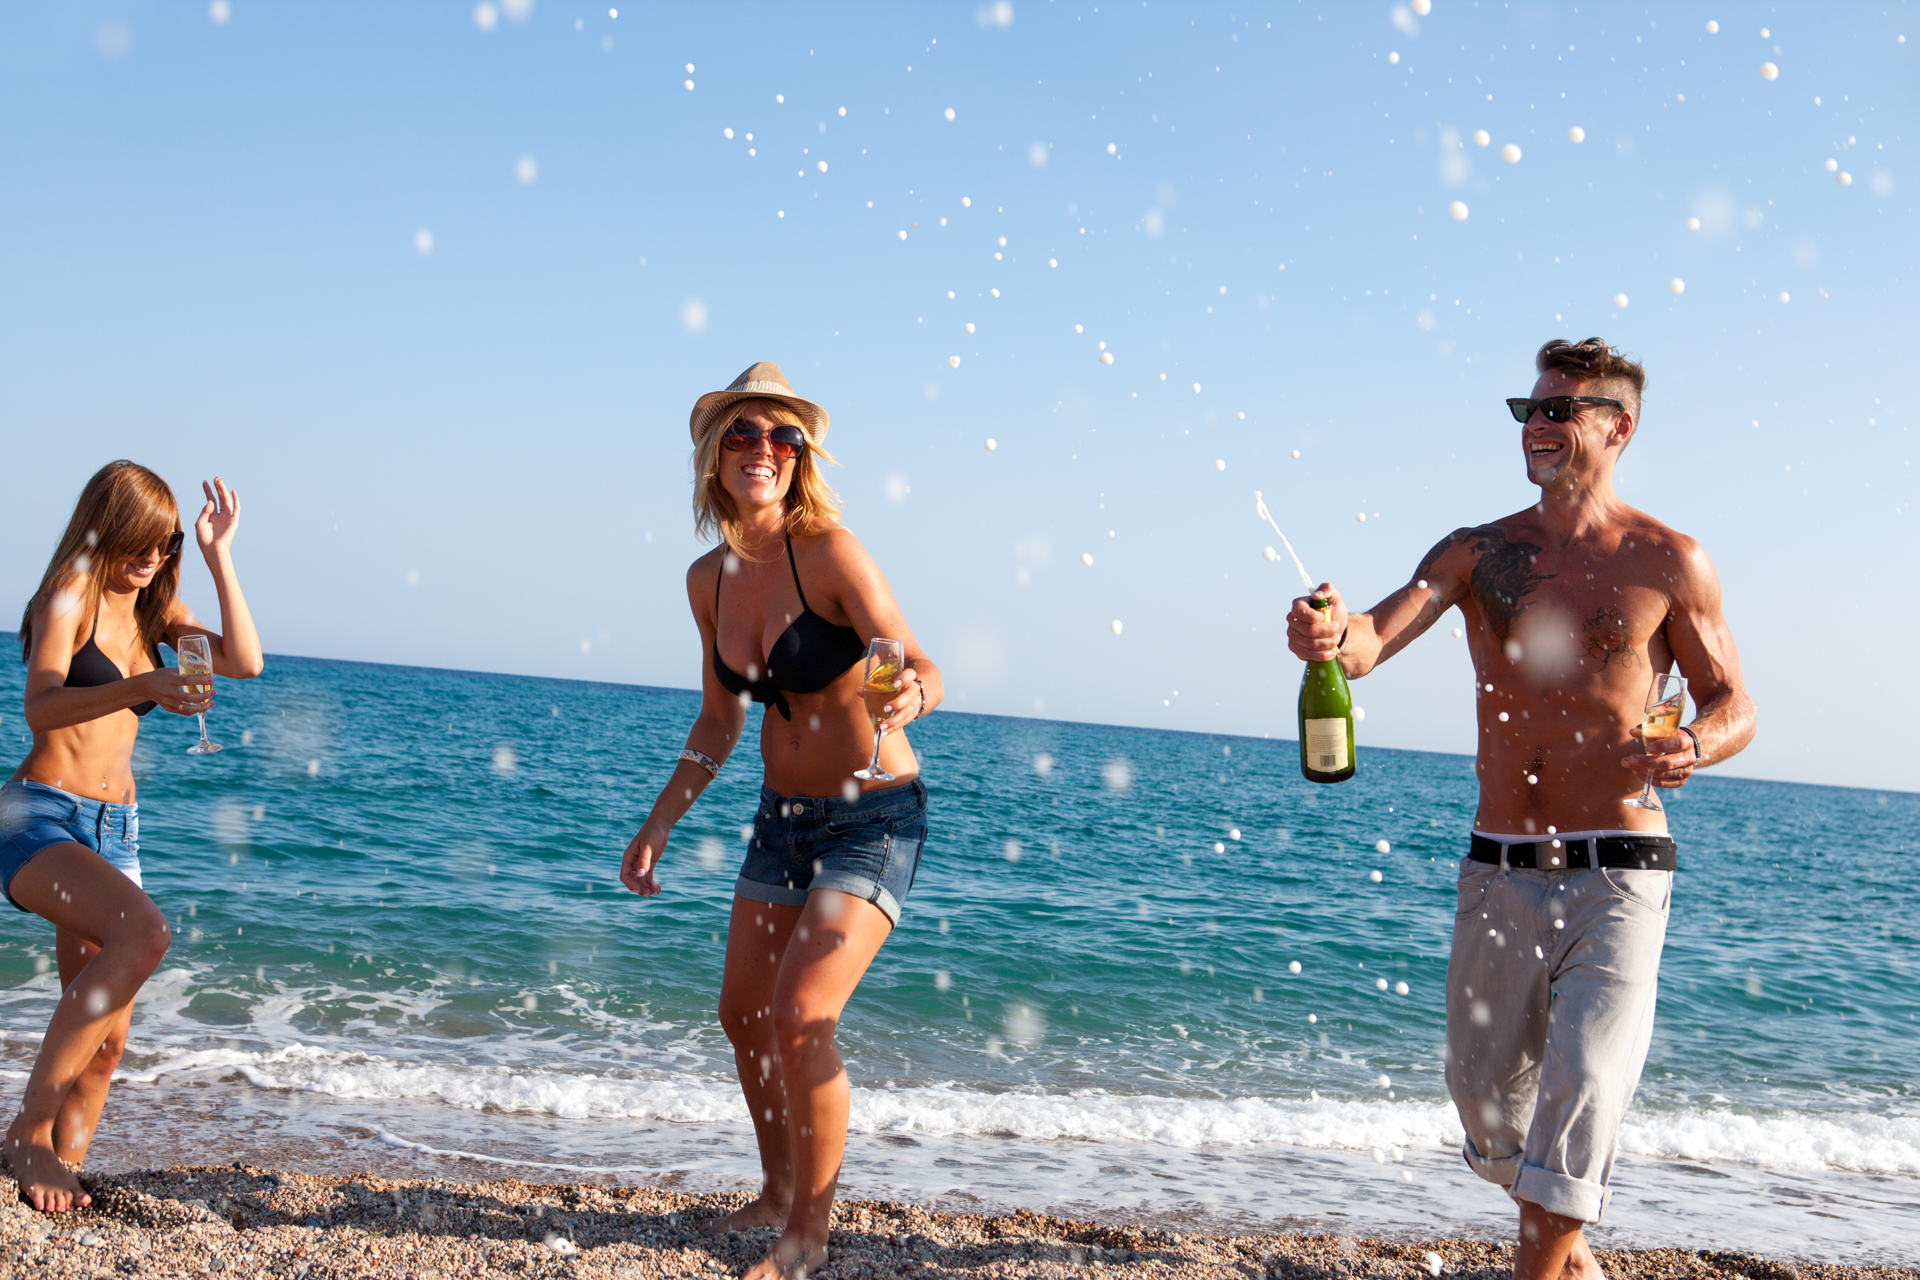 Group of friends dancing under champagne bubbles on beach